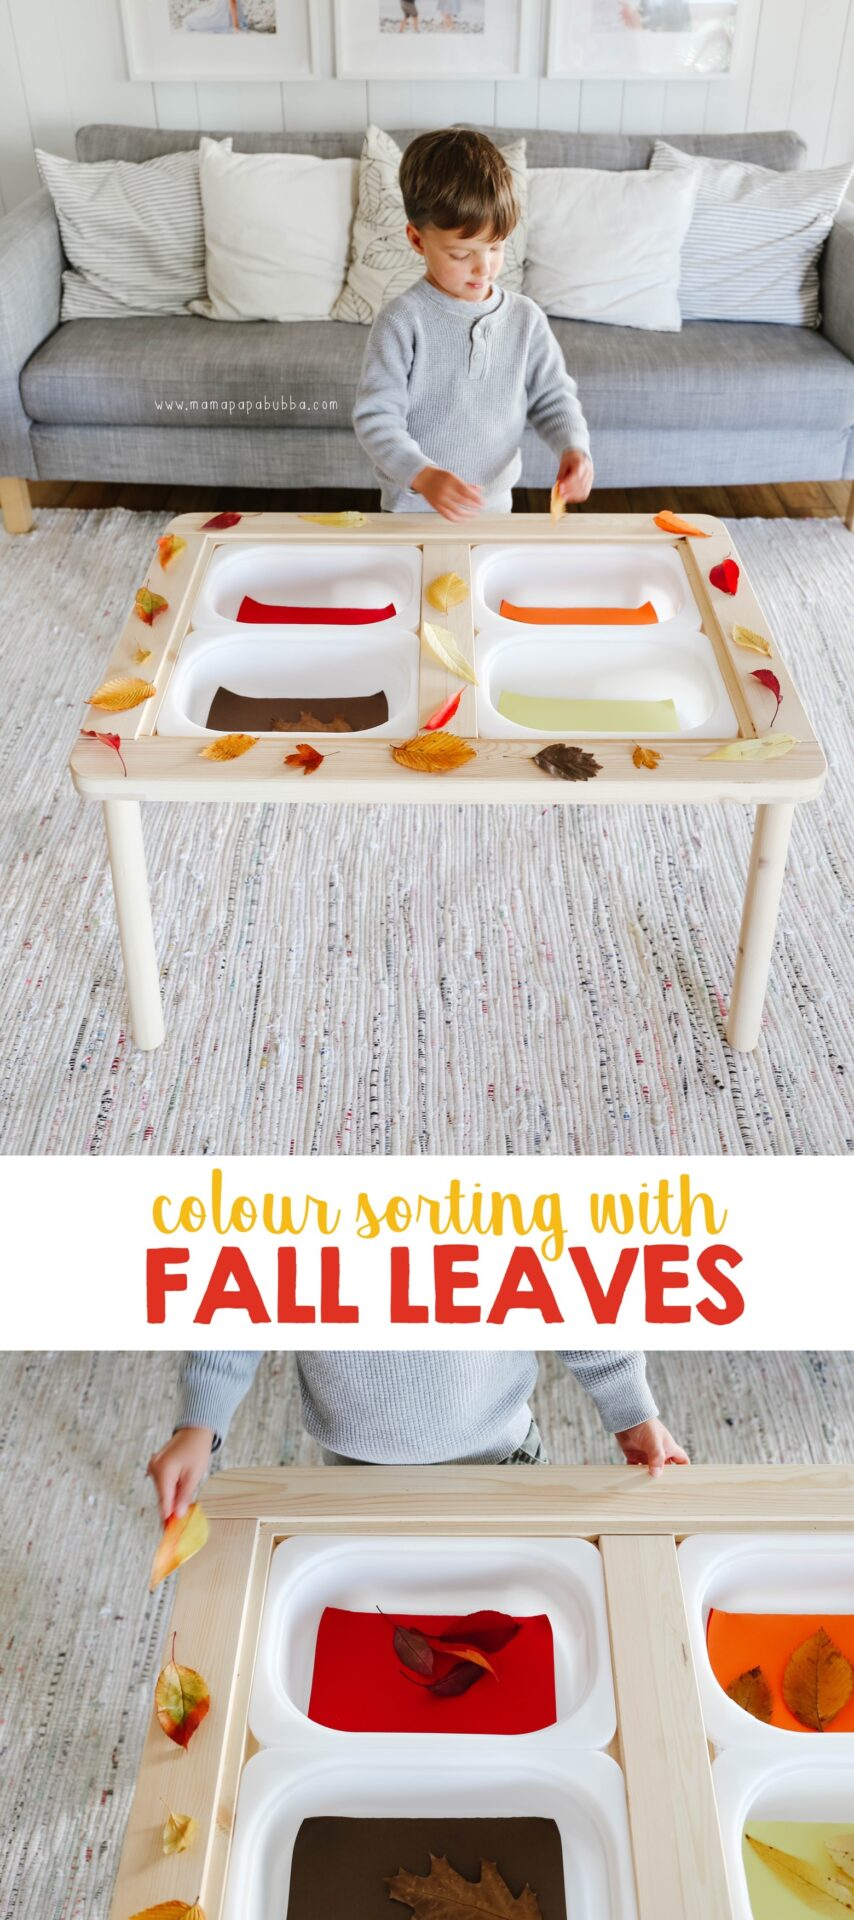 Colour Sorting With Fall Leaves | Mama Papa Bubba